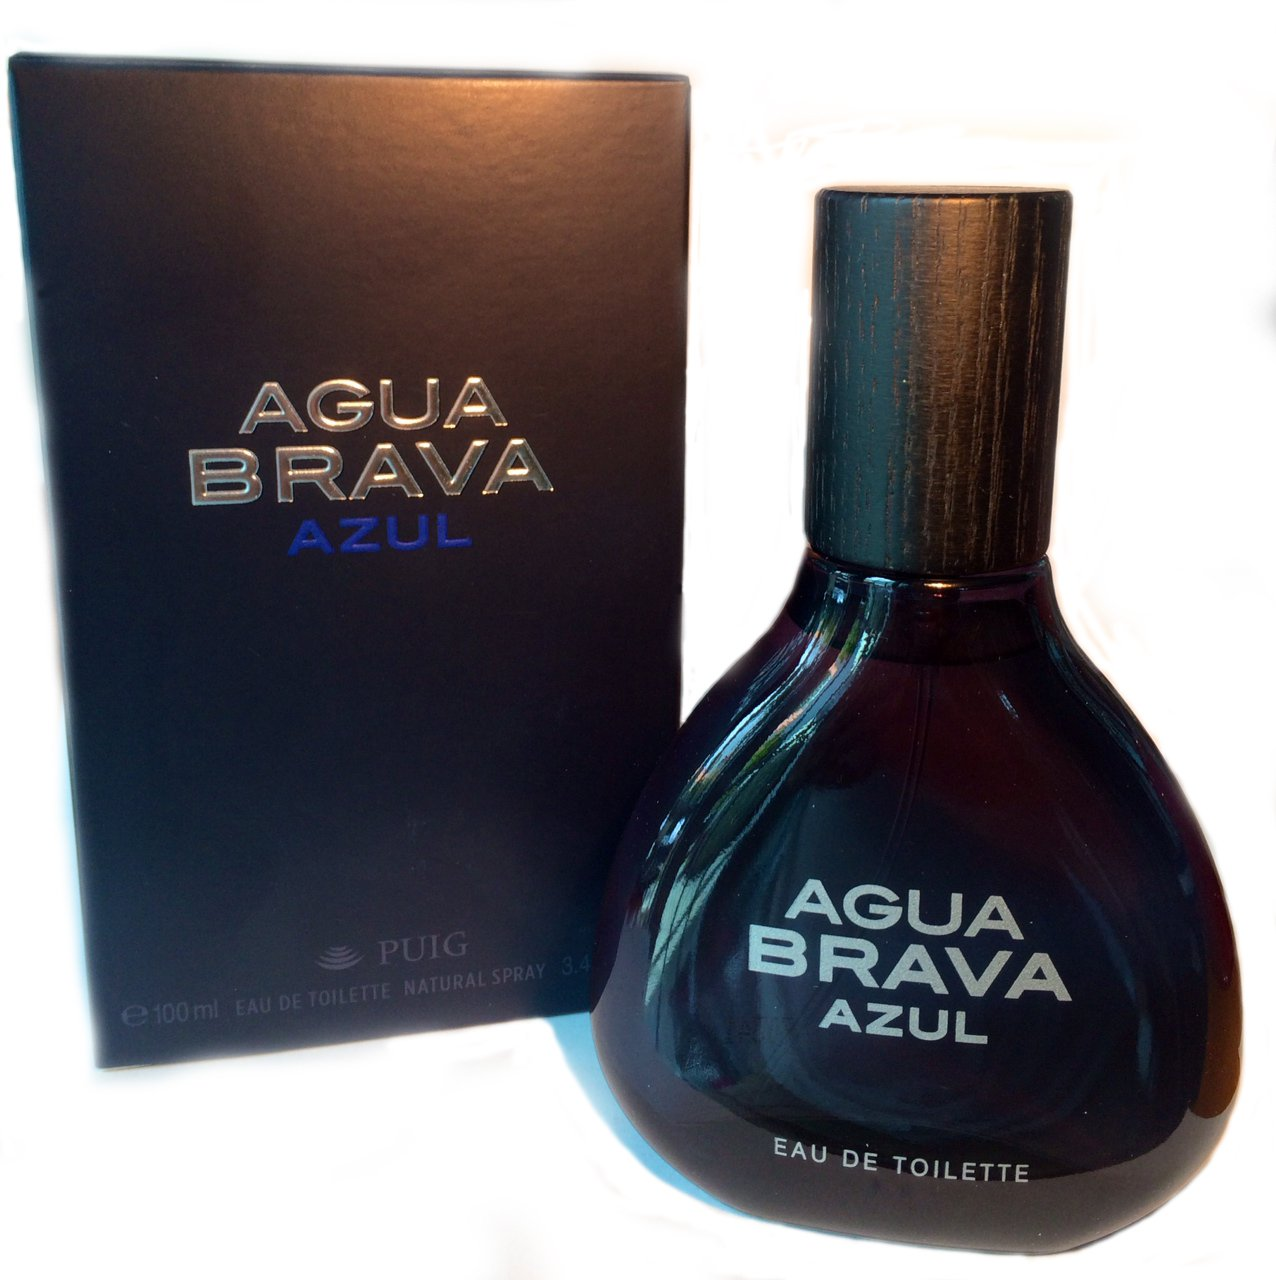 Agua Brava New! Agua Brava Azul for Men Eau De Toilette 100ml/3.4 Fl